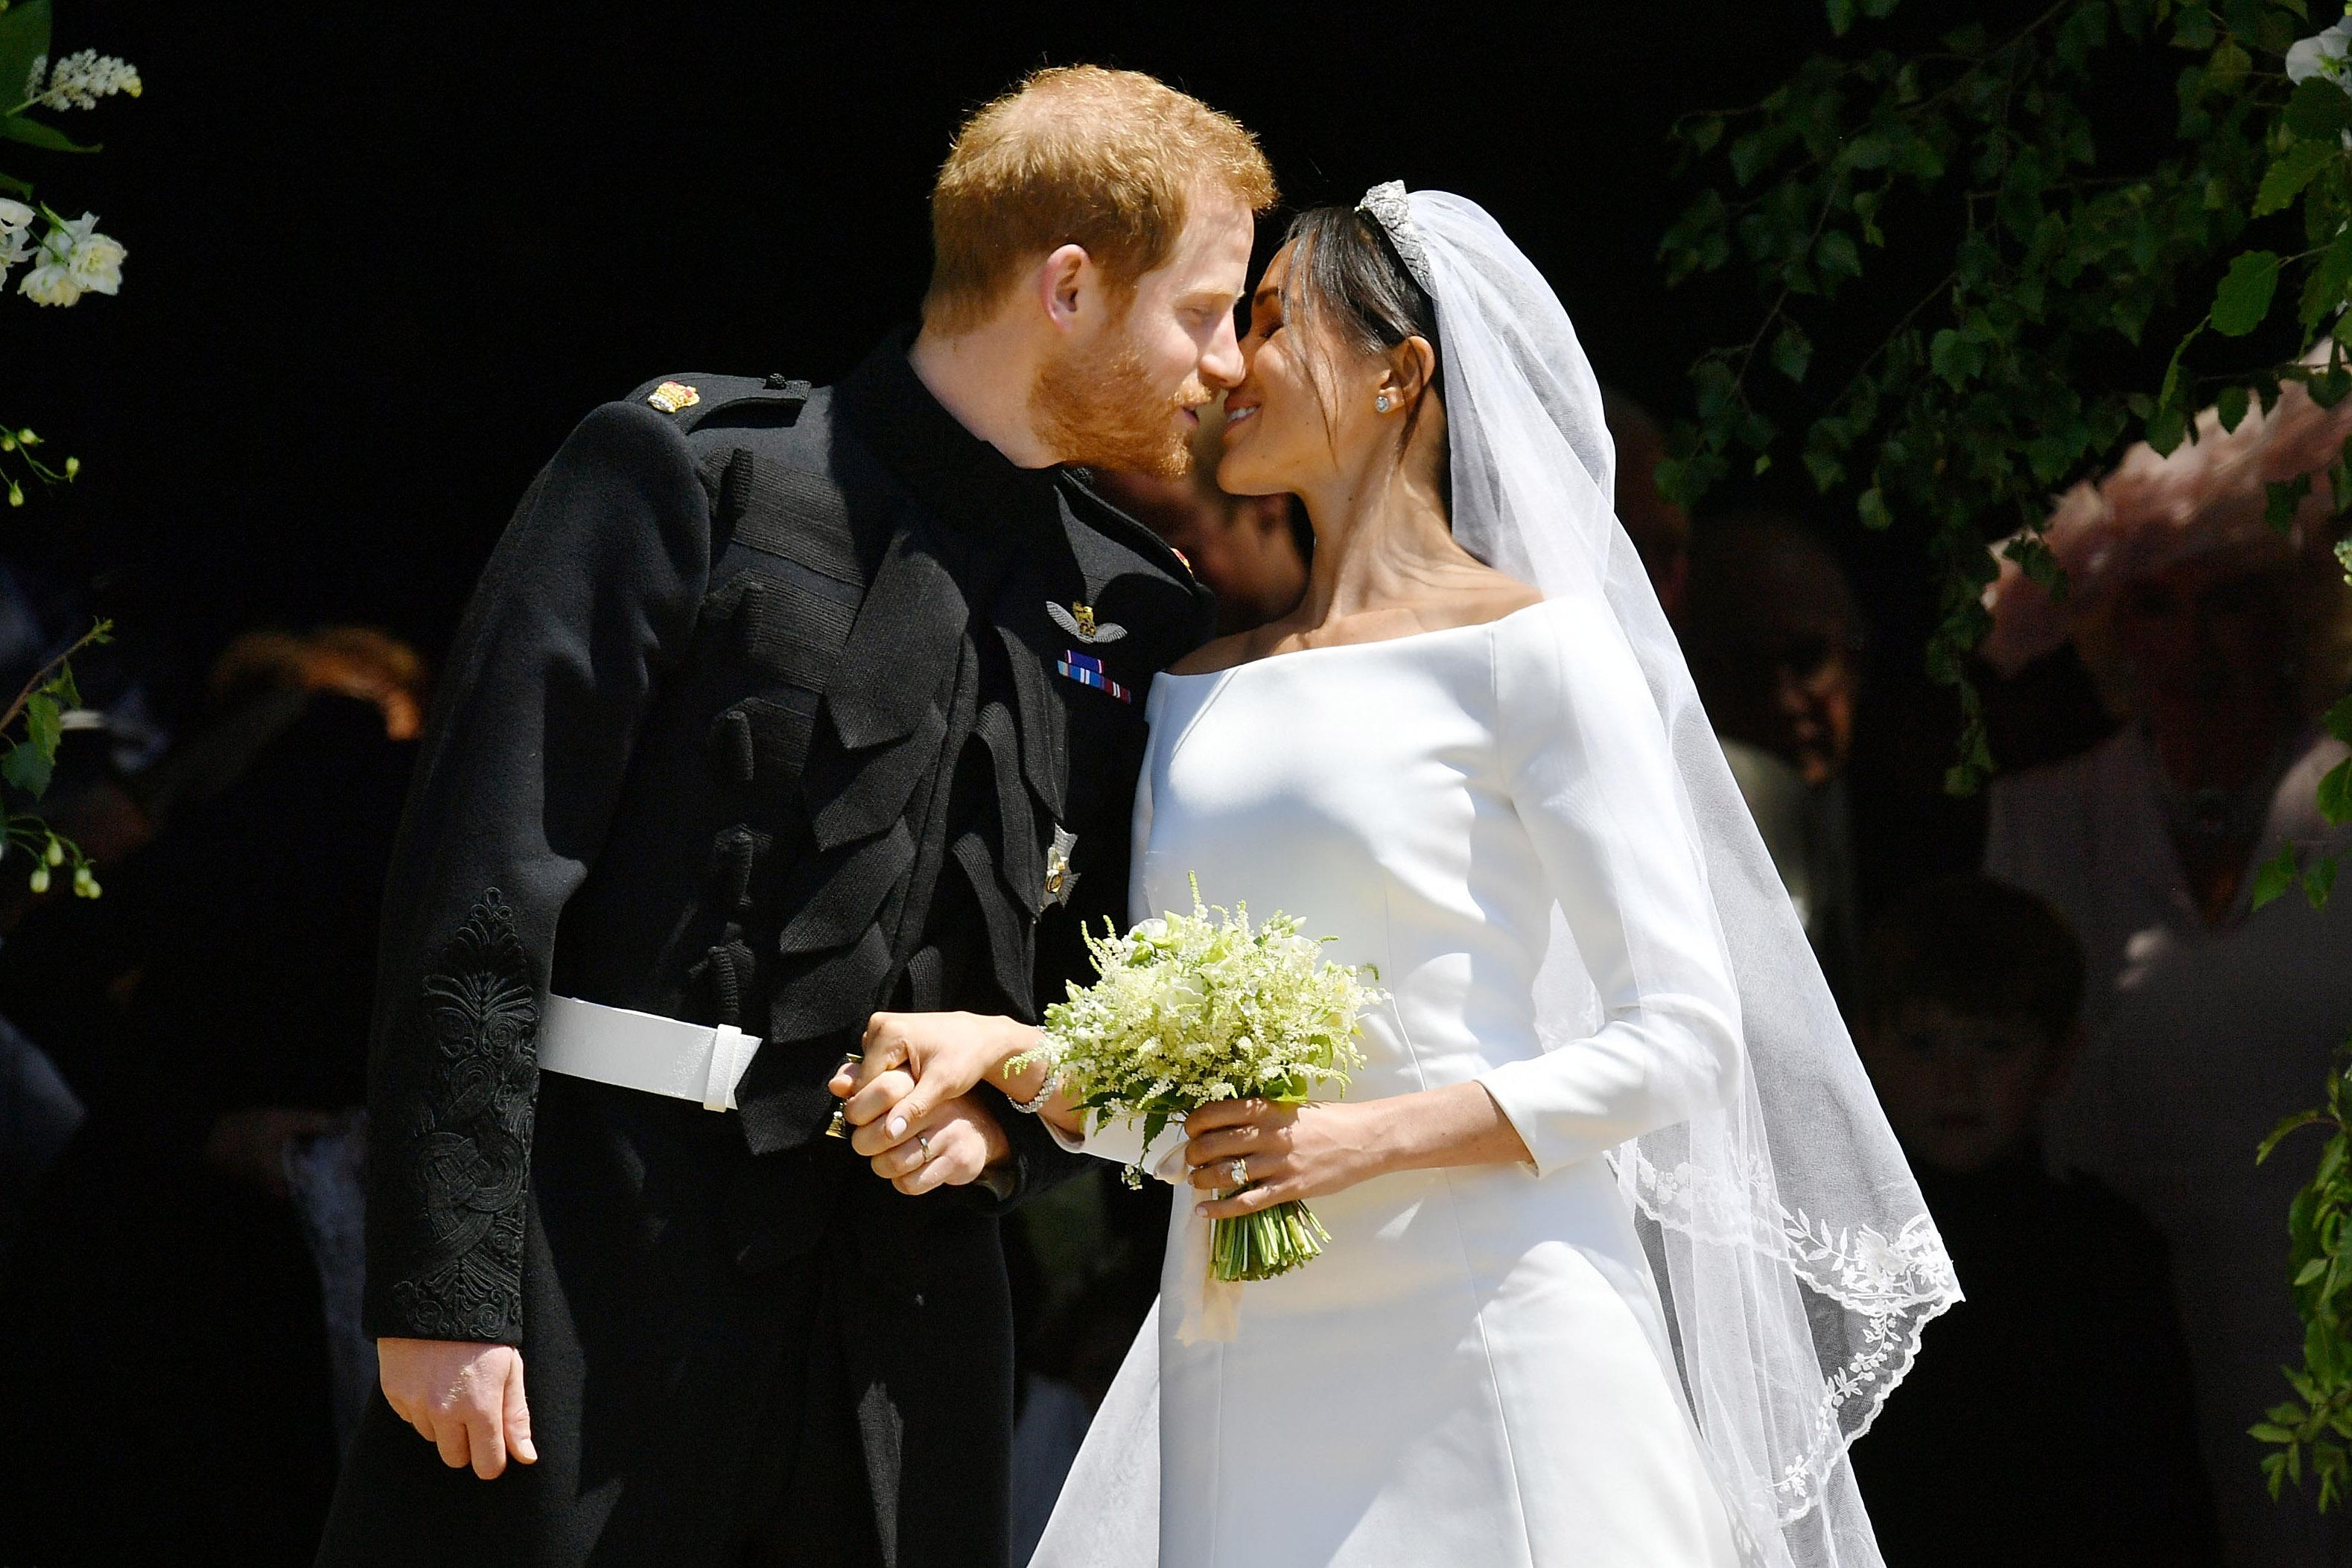 Where is Meghan Markle's bouquet